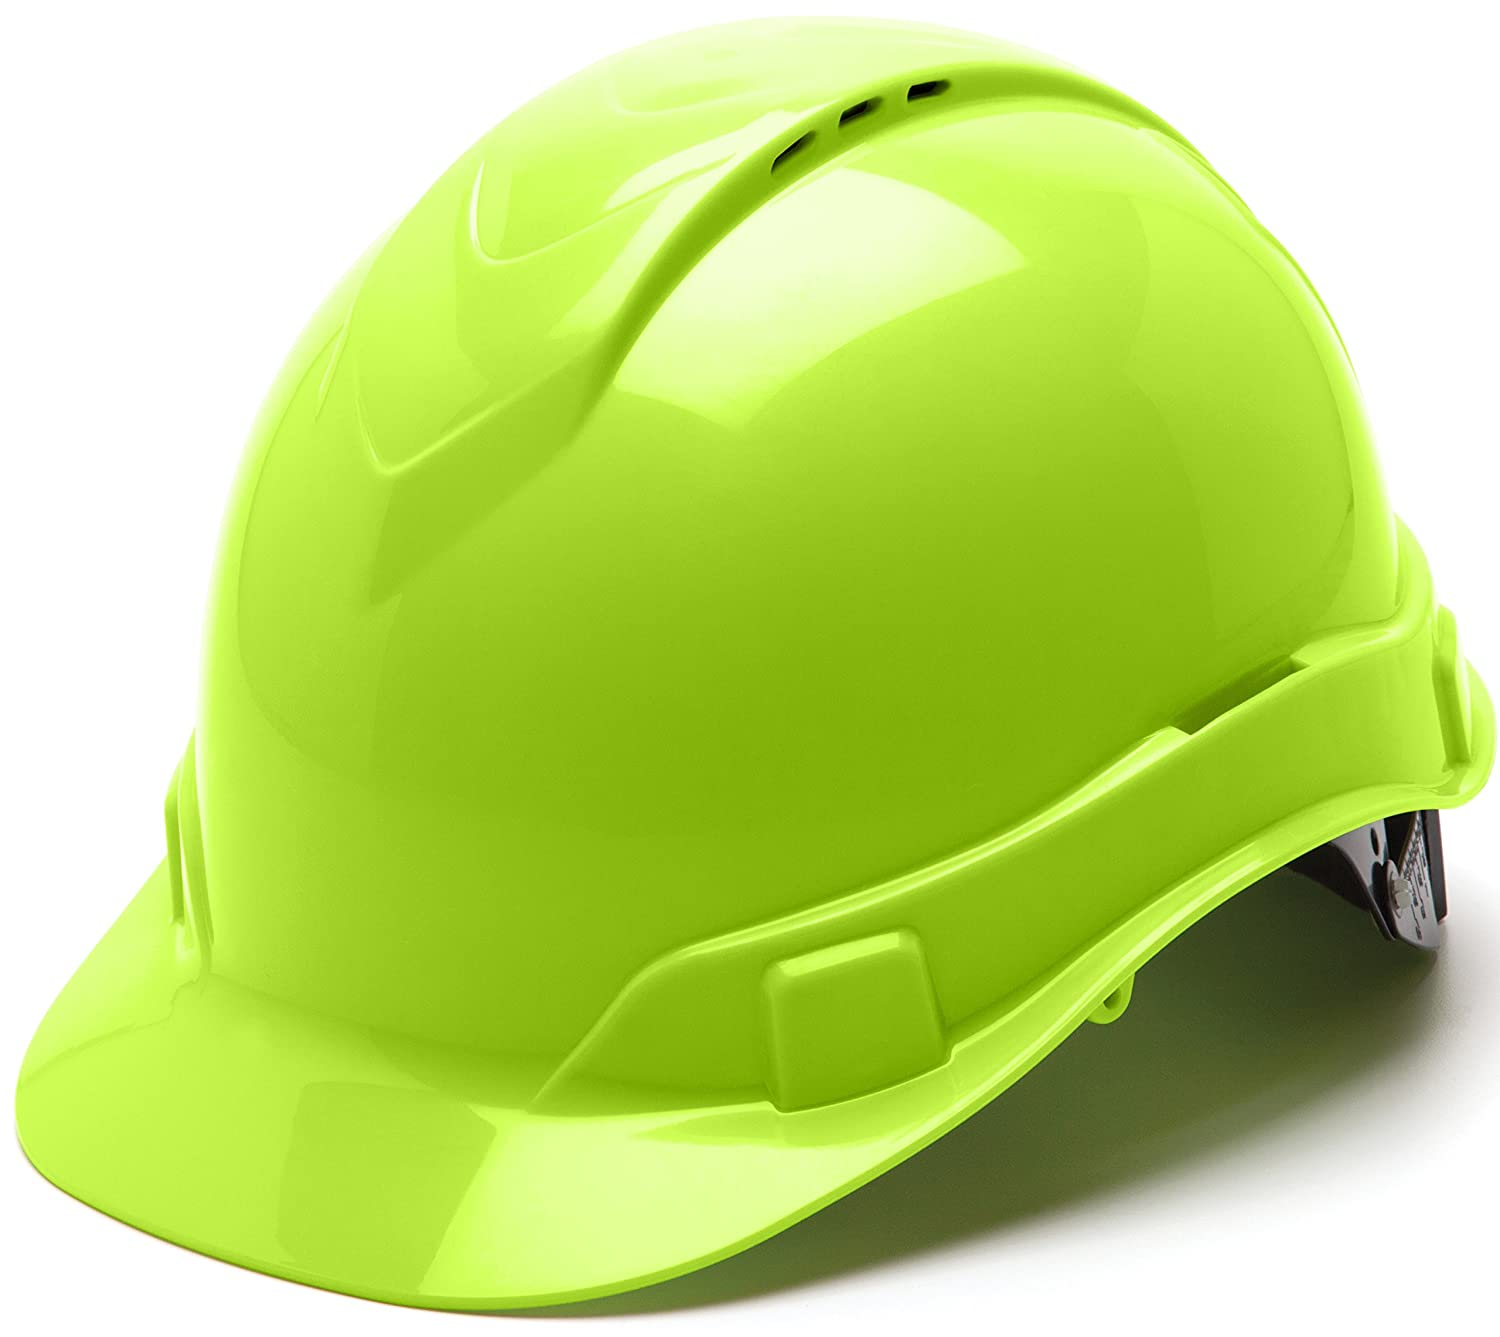 Pyramex HP44131V Ridgeline Cap Style Hard Hat with 4-Point Vented Ratchet, Hi-Vis Green by Pyramex Pyramex Safety Products